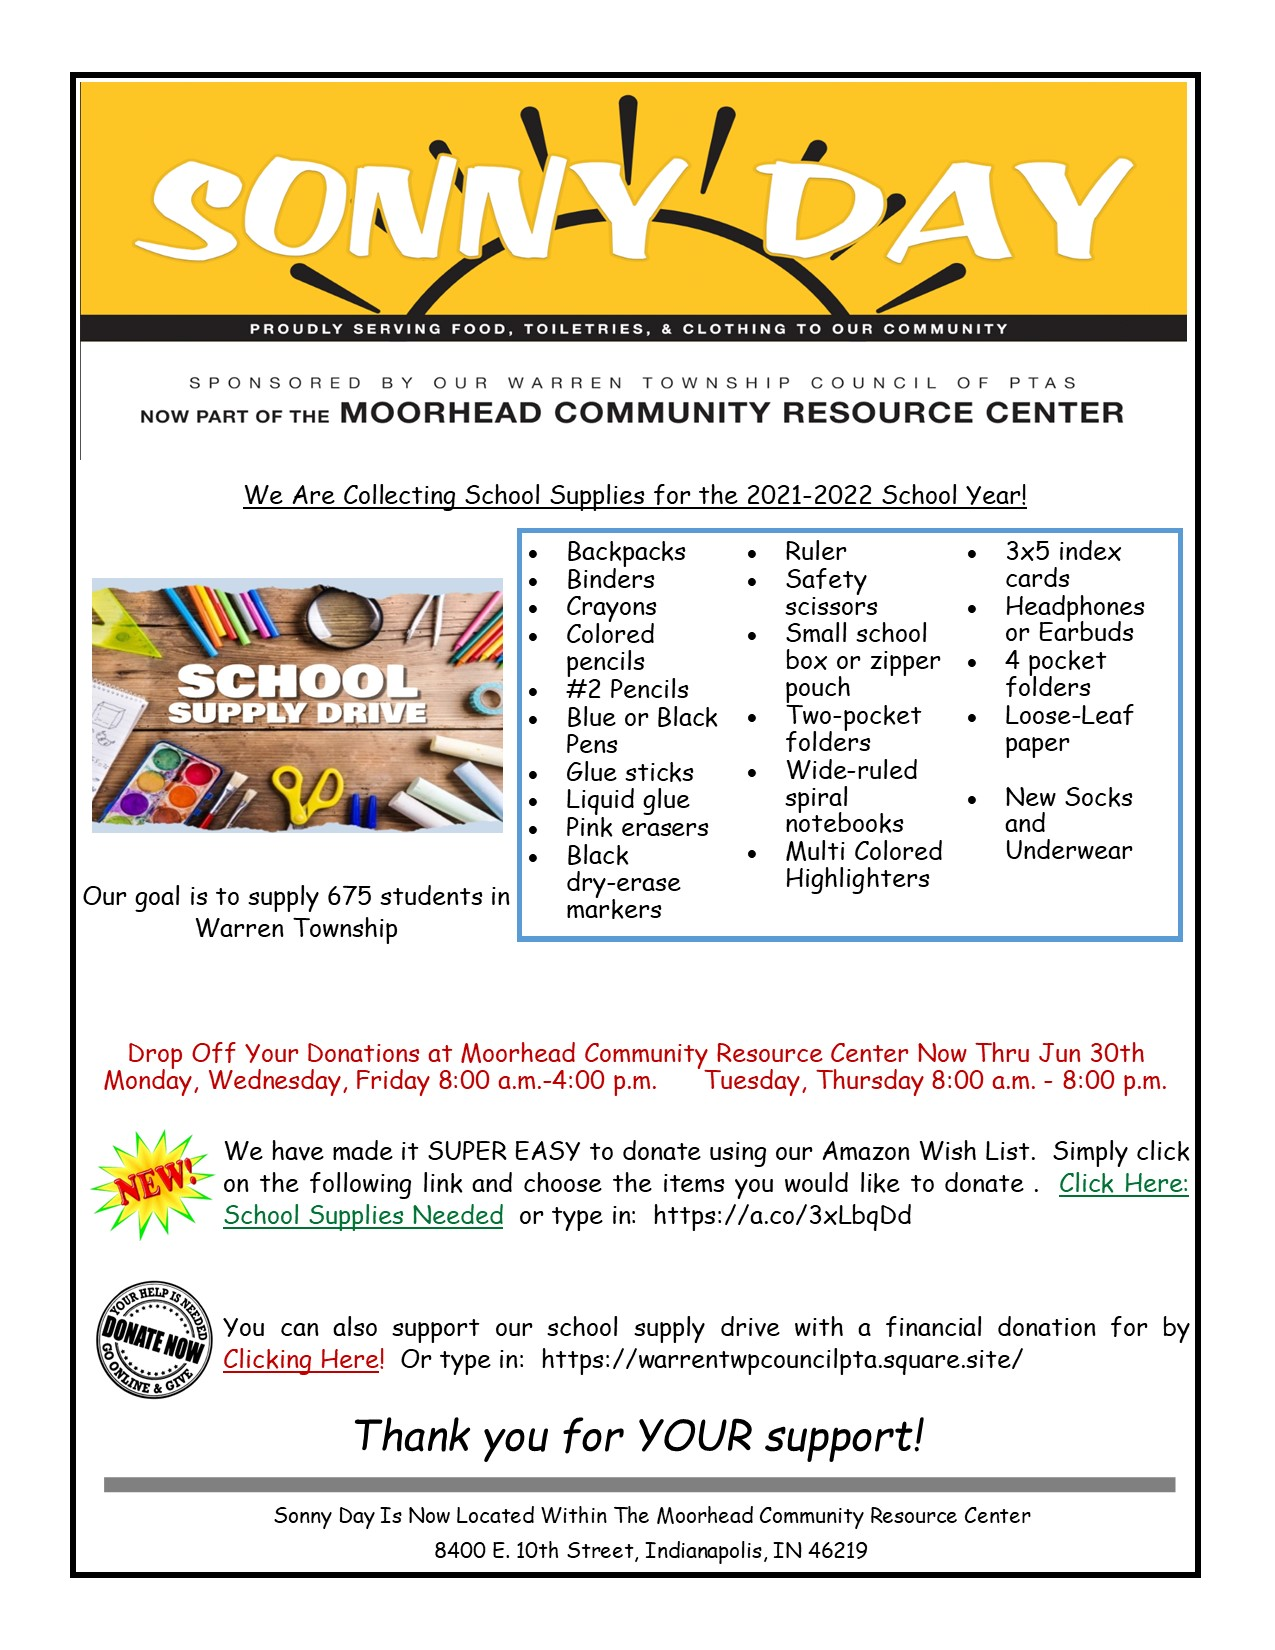 Sonny Day Sonny Day Is Now Located Within The Moorhead Community Resource Center 8400 E. 10th Street, Indianapolis, IN 46219 We Are Collecting School Supplies for the 2021-2022 School Year! Our goal is to supply 675 students in Warren Township Drop Off Your Donations at Moorhead Community Resource Center Now Thru Jun 30th Monday, Wednesday, Friday 8:00 a.m.-4:00 p.m. Tuesday, Thursday 8:00 a.m. - 8:00 p.m. We have made it SUPER EASY to donate using our Amazon Wish List. Simply click on the following link and choose the items you would like to donate . Click Here: School Supplies Needed or type in: https://a.co/3xLbqDd You can also support our school supply drive with a financial donation for by Clicking Here! Or type in: https://warrentwpcouncilpta.square.site/ Thank you for YOUR support! • Backpacks • Binders • Crayons • Colored pencils • #2 Pencils • Blue or Black Pens • Glue sticks • Liquid glue • Pink erasers • Black dry-erase markers • Ruler • Safety scissors • Small school box or zipper pouch • Two-pocket folders • Wide-ruled spiral notebooks • Multi Colored Highlighters • 3x5 index cards • Headphones or Earbuds • 4 pocket folders • Loose-Leaf paper • New Socks and Underwear